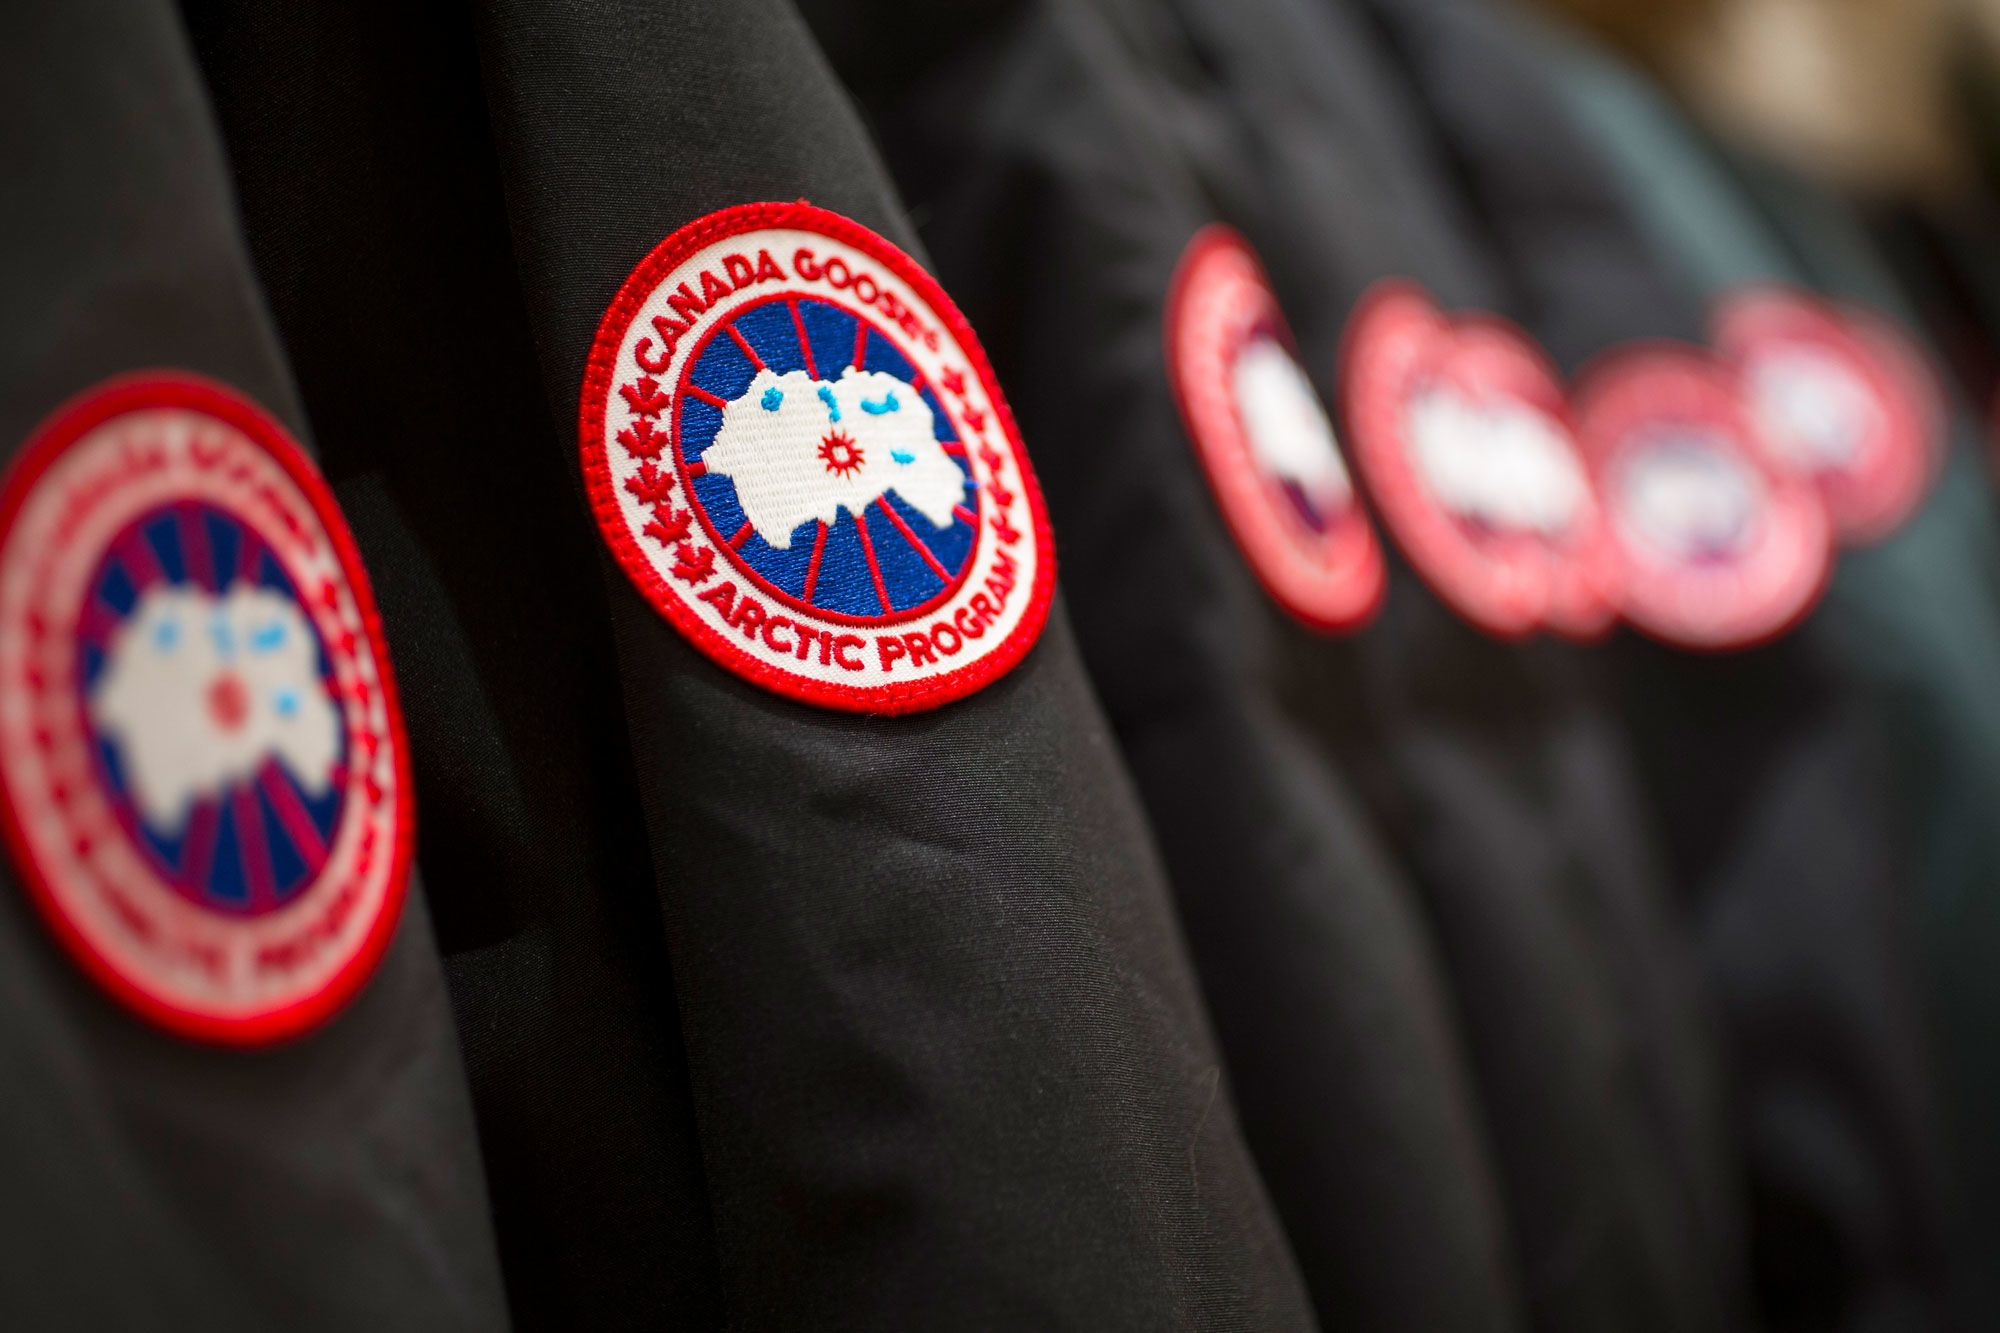 Canada Goose reports fourth quarter fiscal 2019 earnings